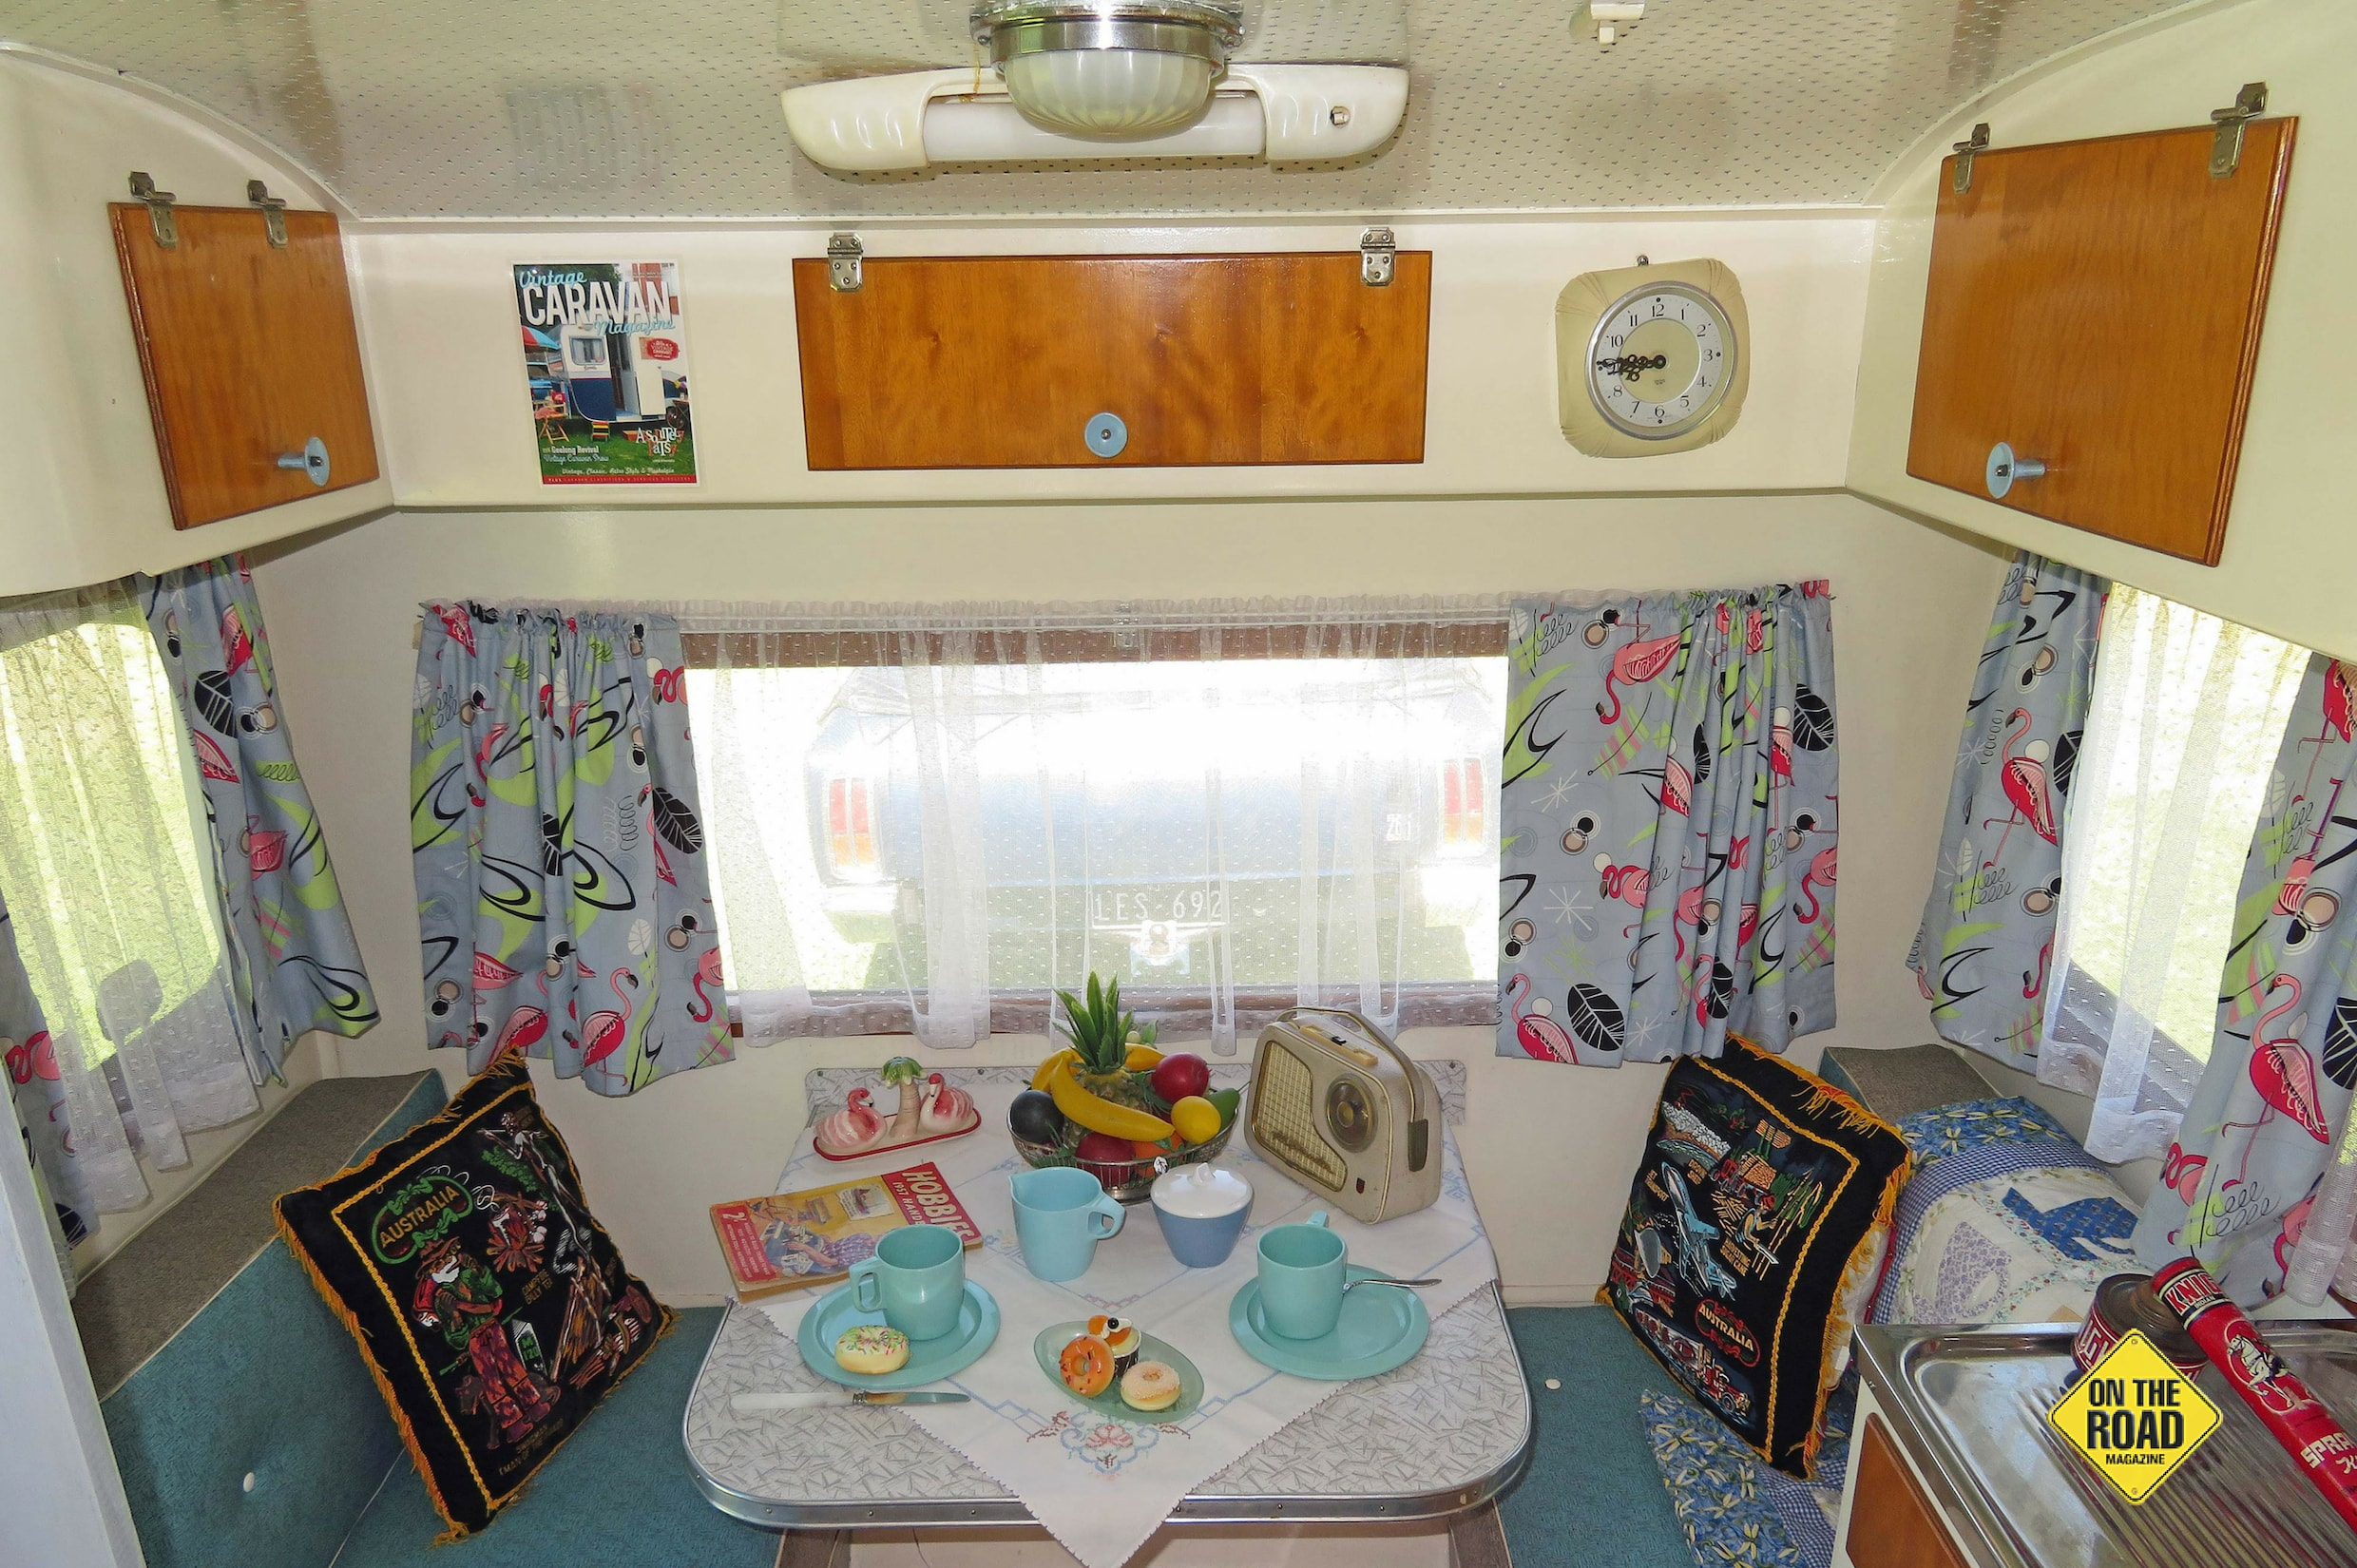 Dennis and Sandra have decorated the van in retro styling to the smallest details